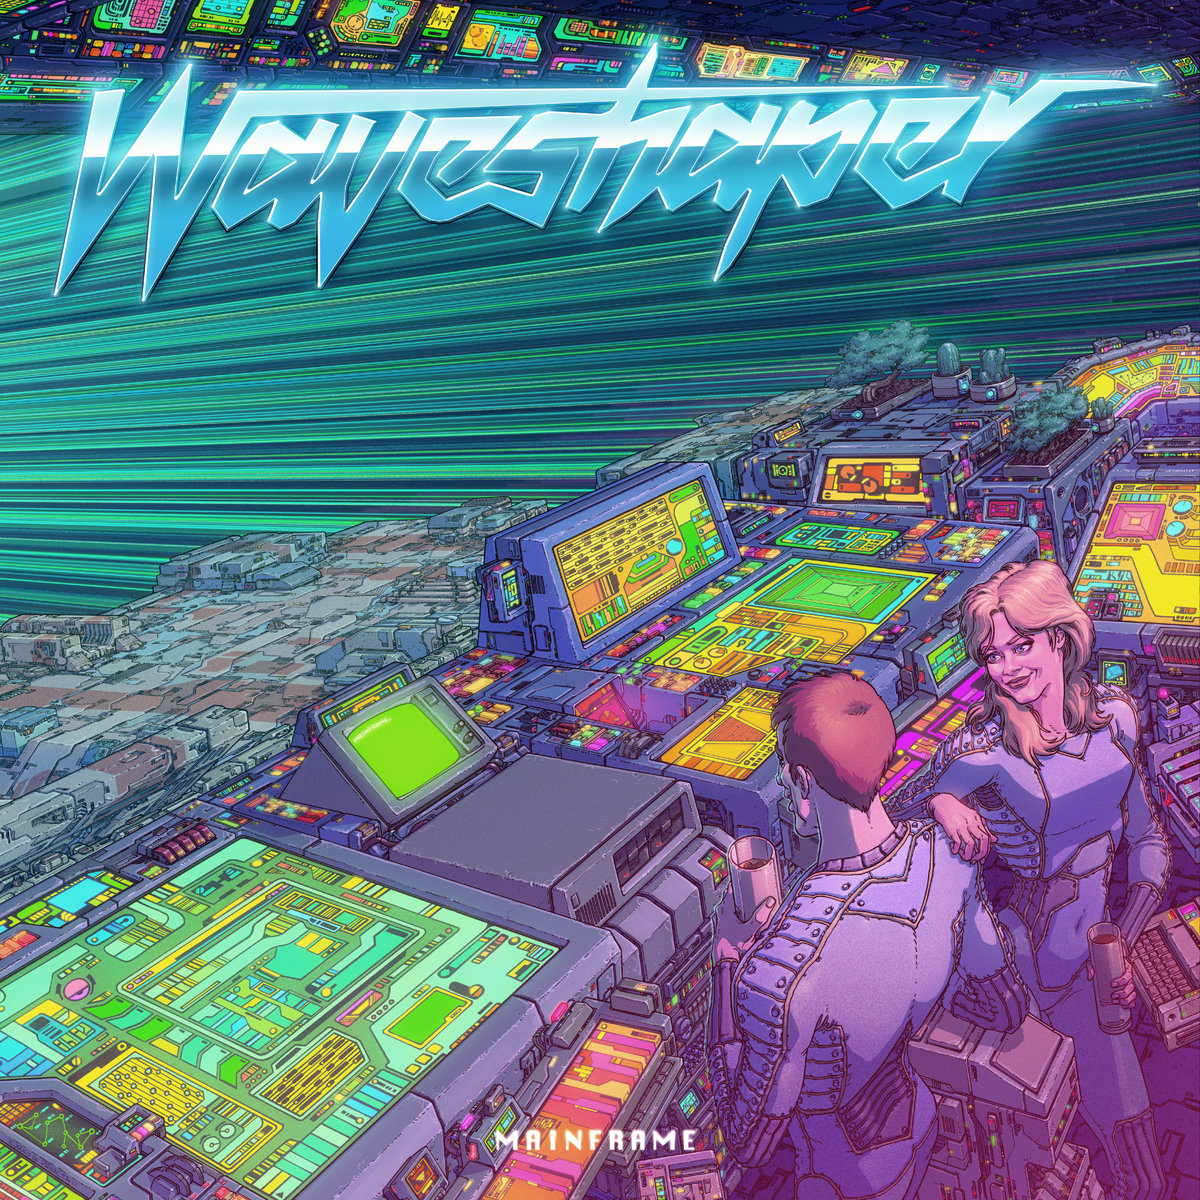 a1503737371 10 - Waveshaper returns with 'Mainframe'